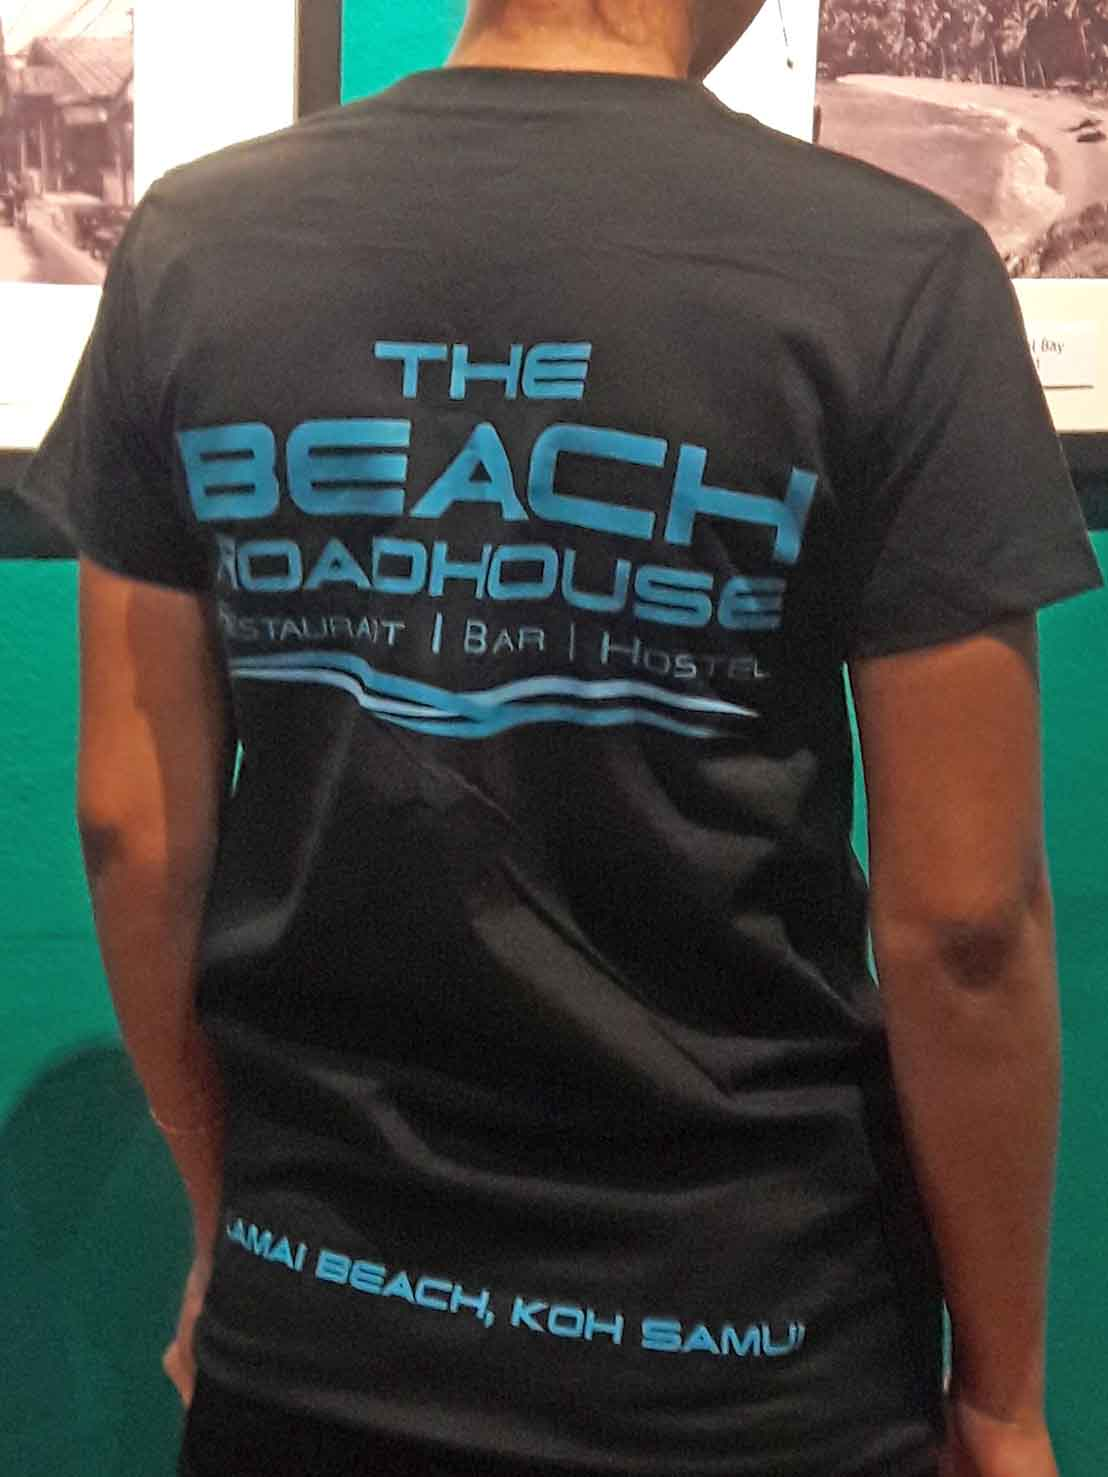 Beach road house t-shirt back side silkscreen print art